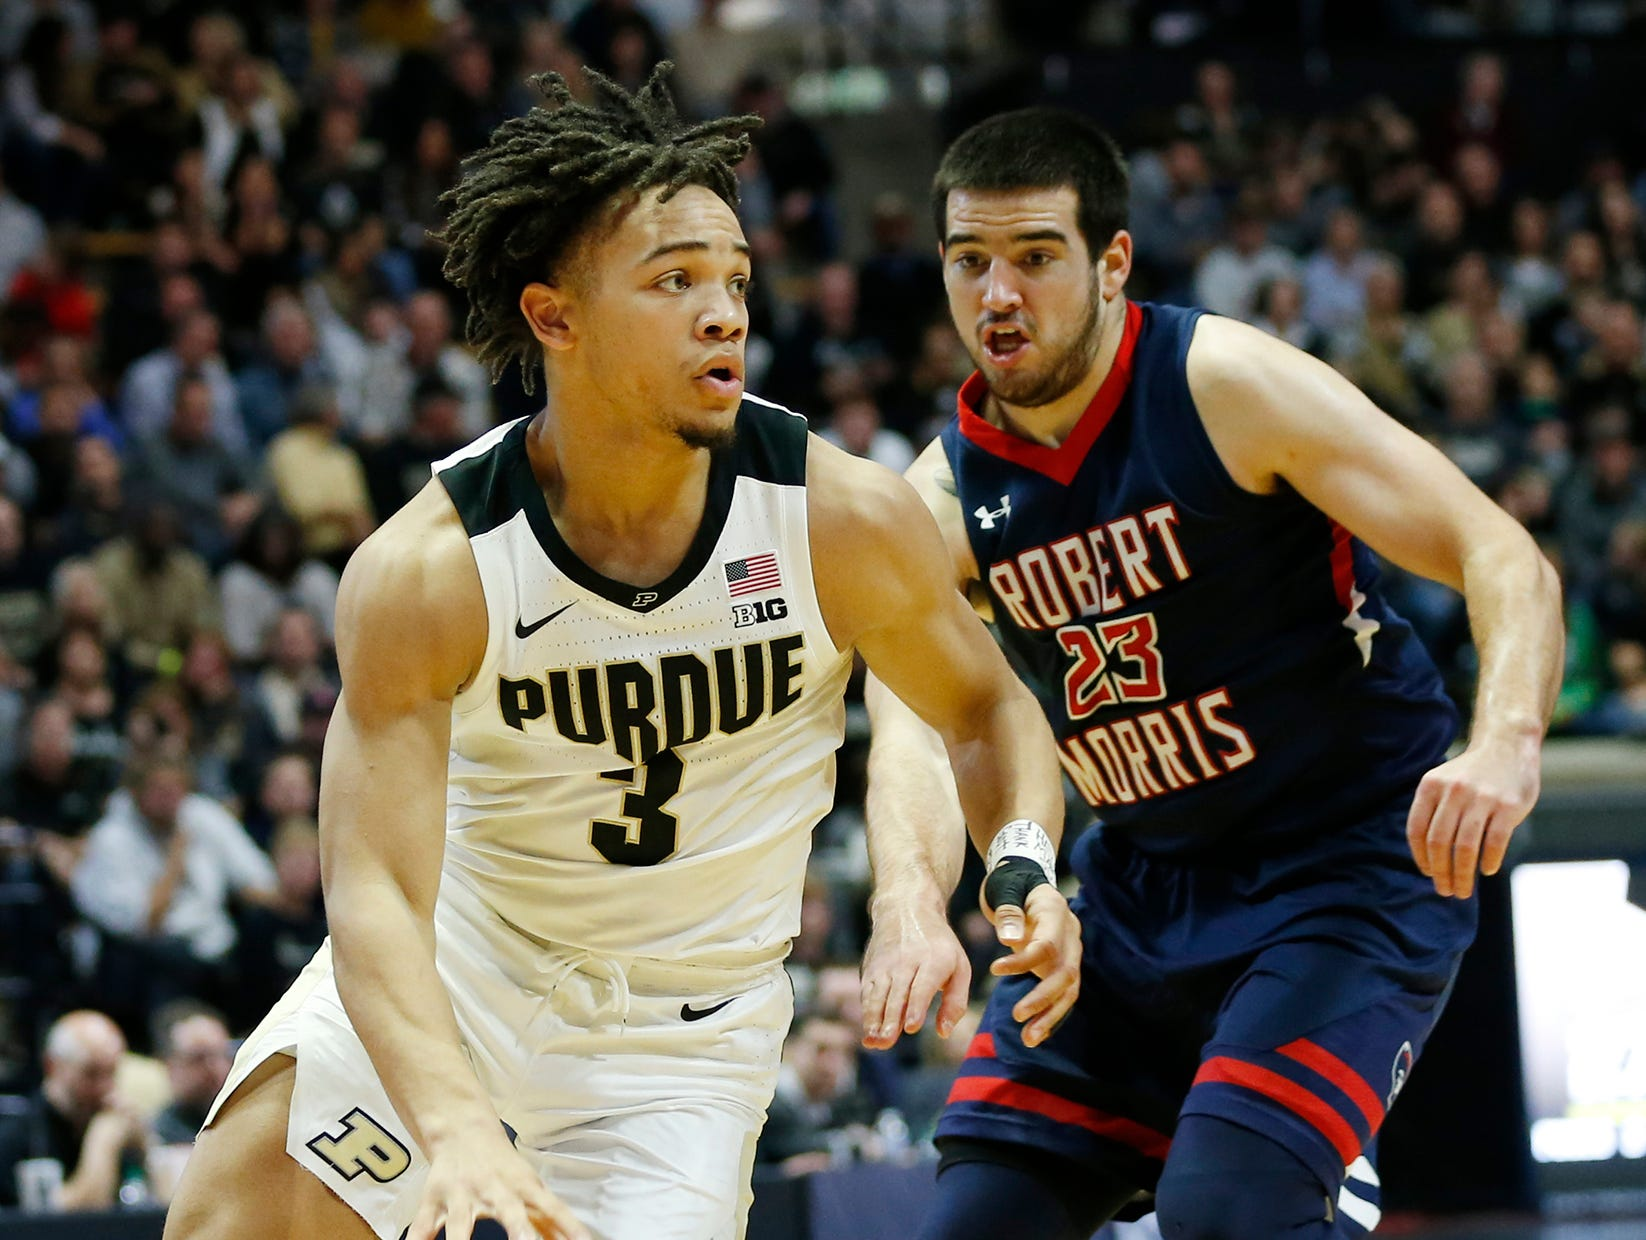 Carsen Edwards gets a quick step on Matty McConnell of Robert Morris Friday, November 23, 2018, at Mackey Arena. Purdue defeated Robert Morris 84-46.